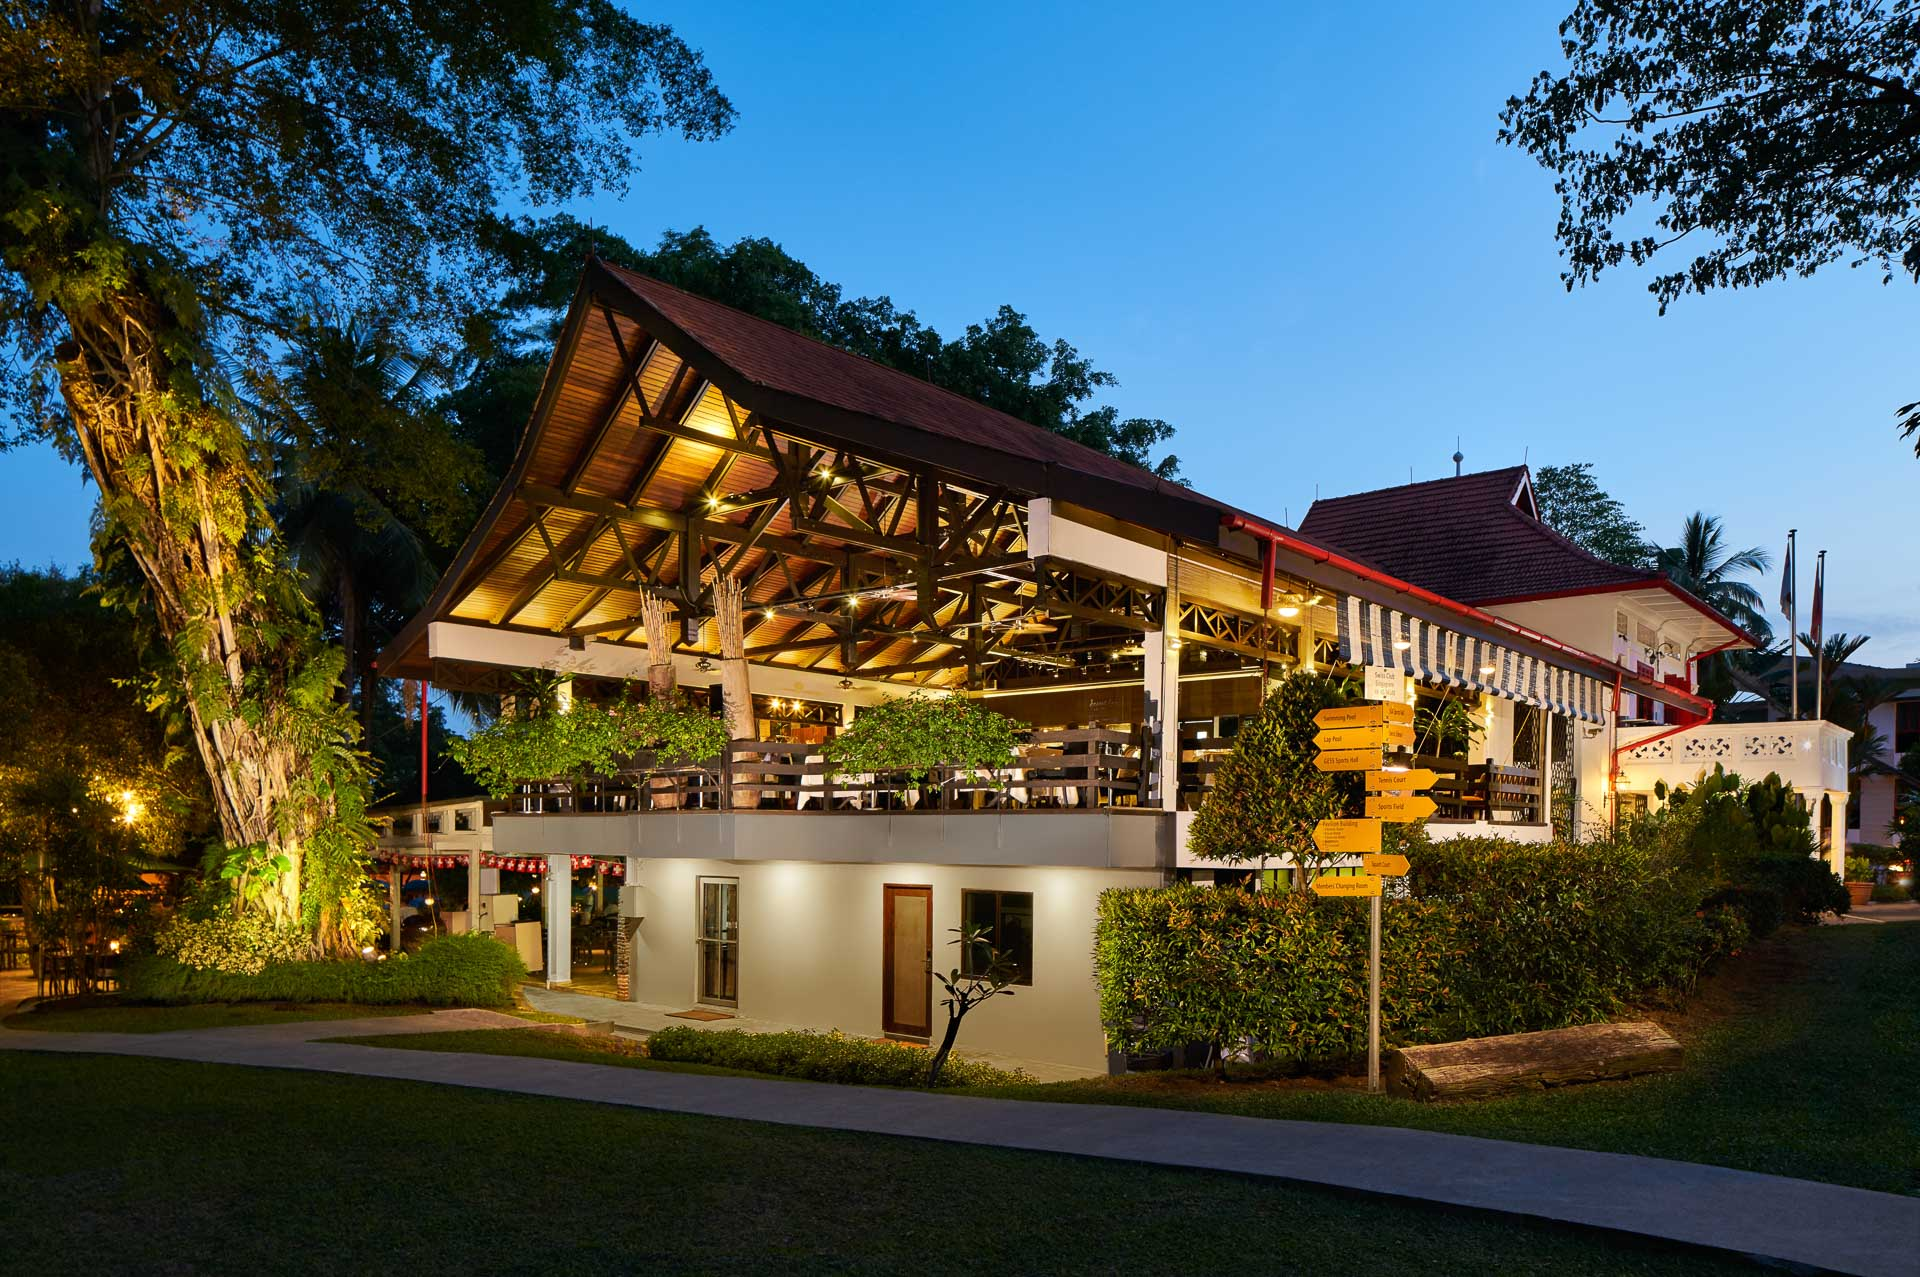 exterior architectural photography. Plain Exterior Architectural Photography Spaces Swiss Club Singapore Arbenz Restaurant  Exterior In Architectural Photography